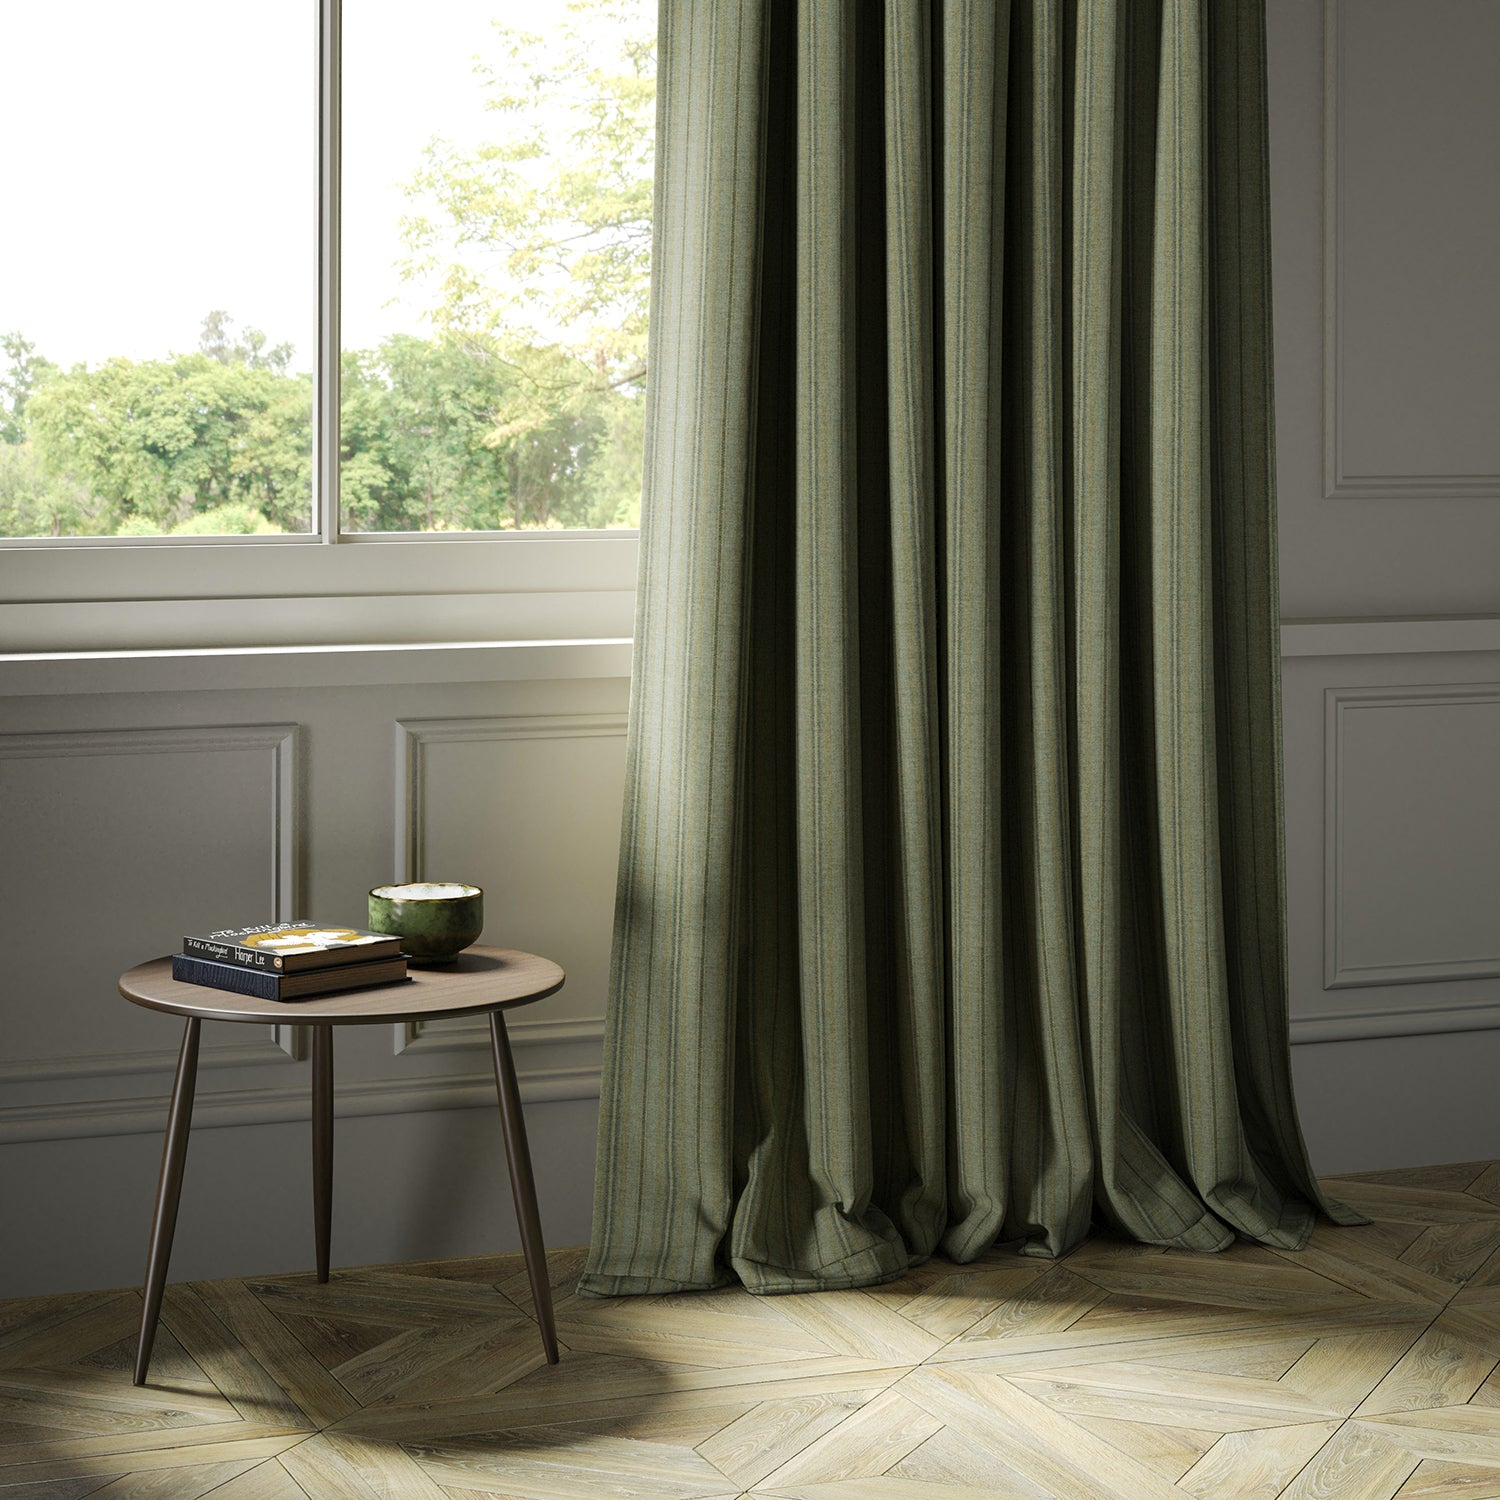 Curtains in a luxury Scottish green wool striped fabric